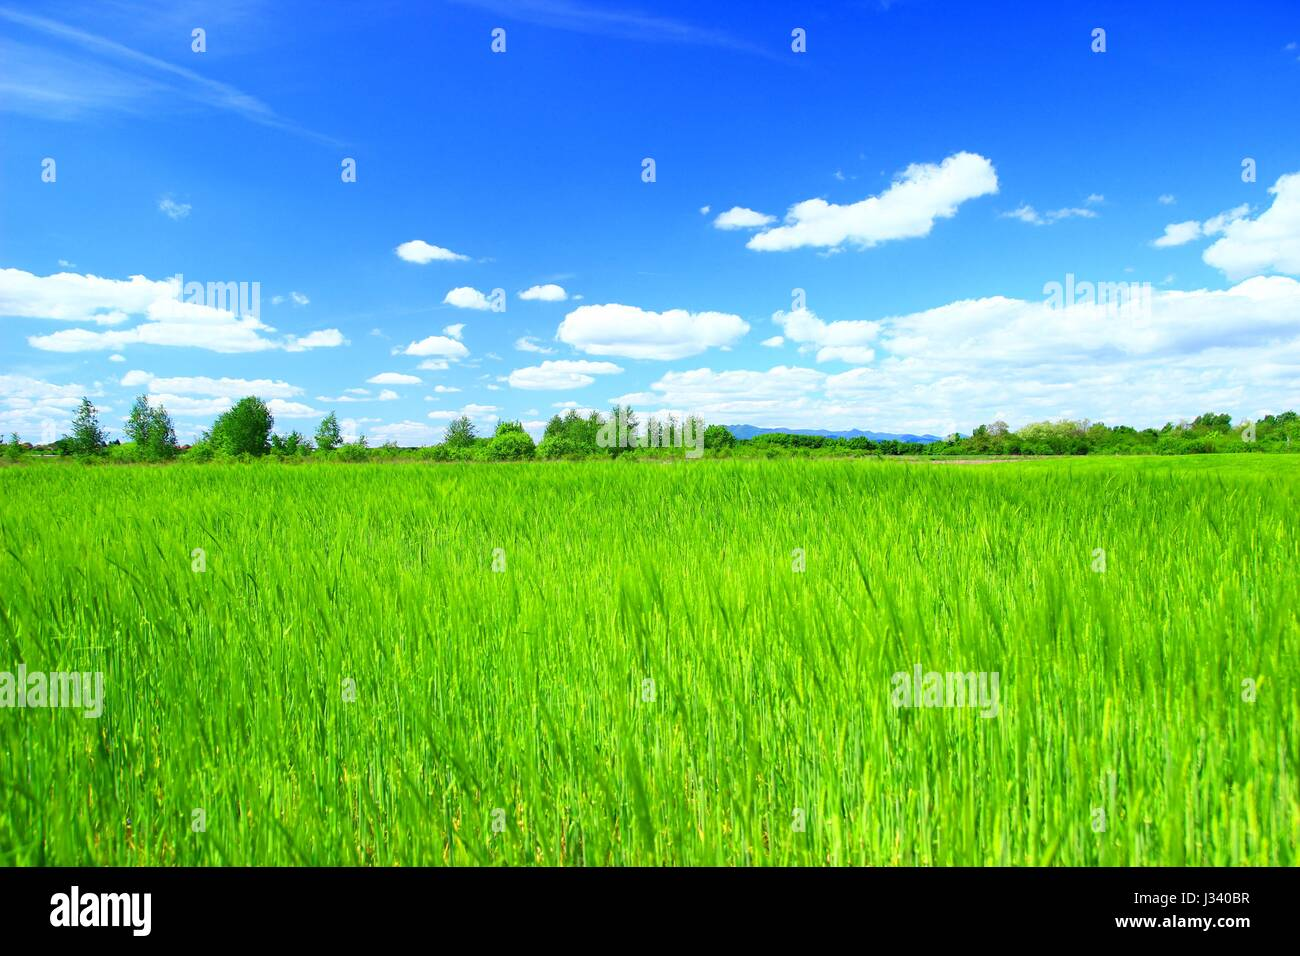 Landscape wallpaper with green wheat field and blue sky with some clouds - Stock Image